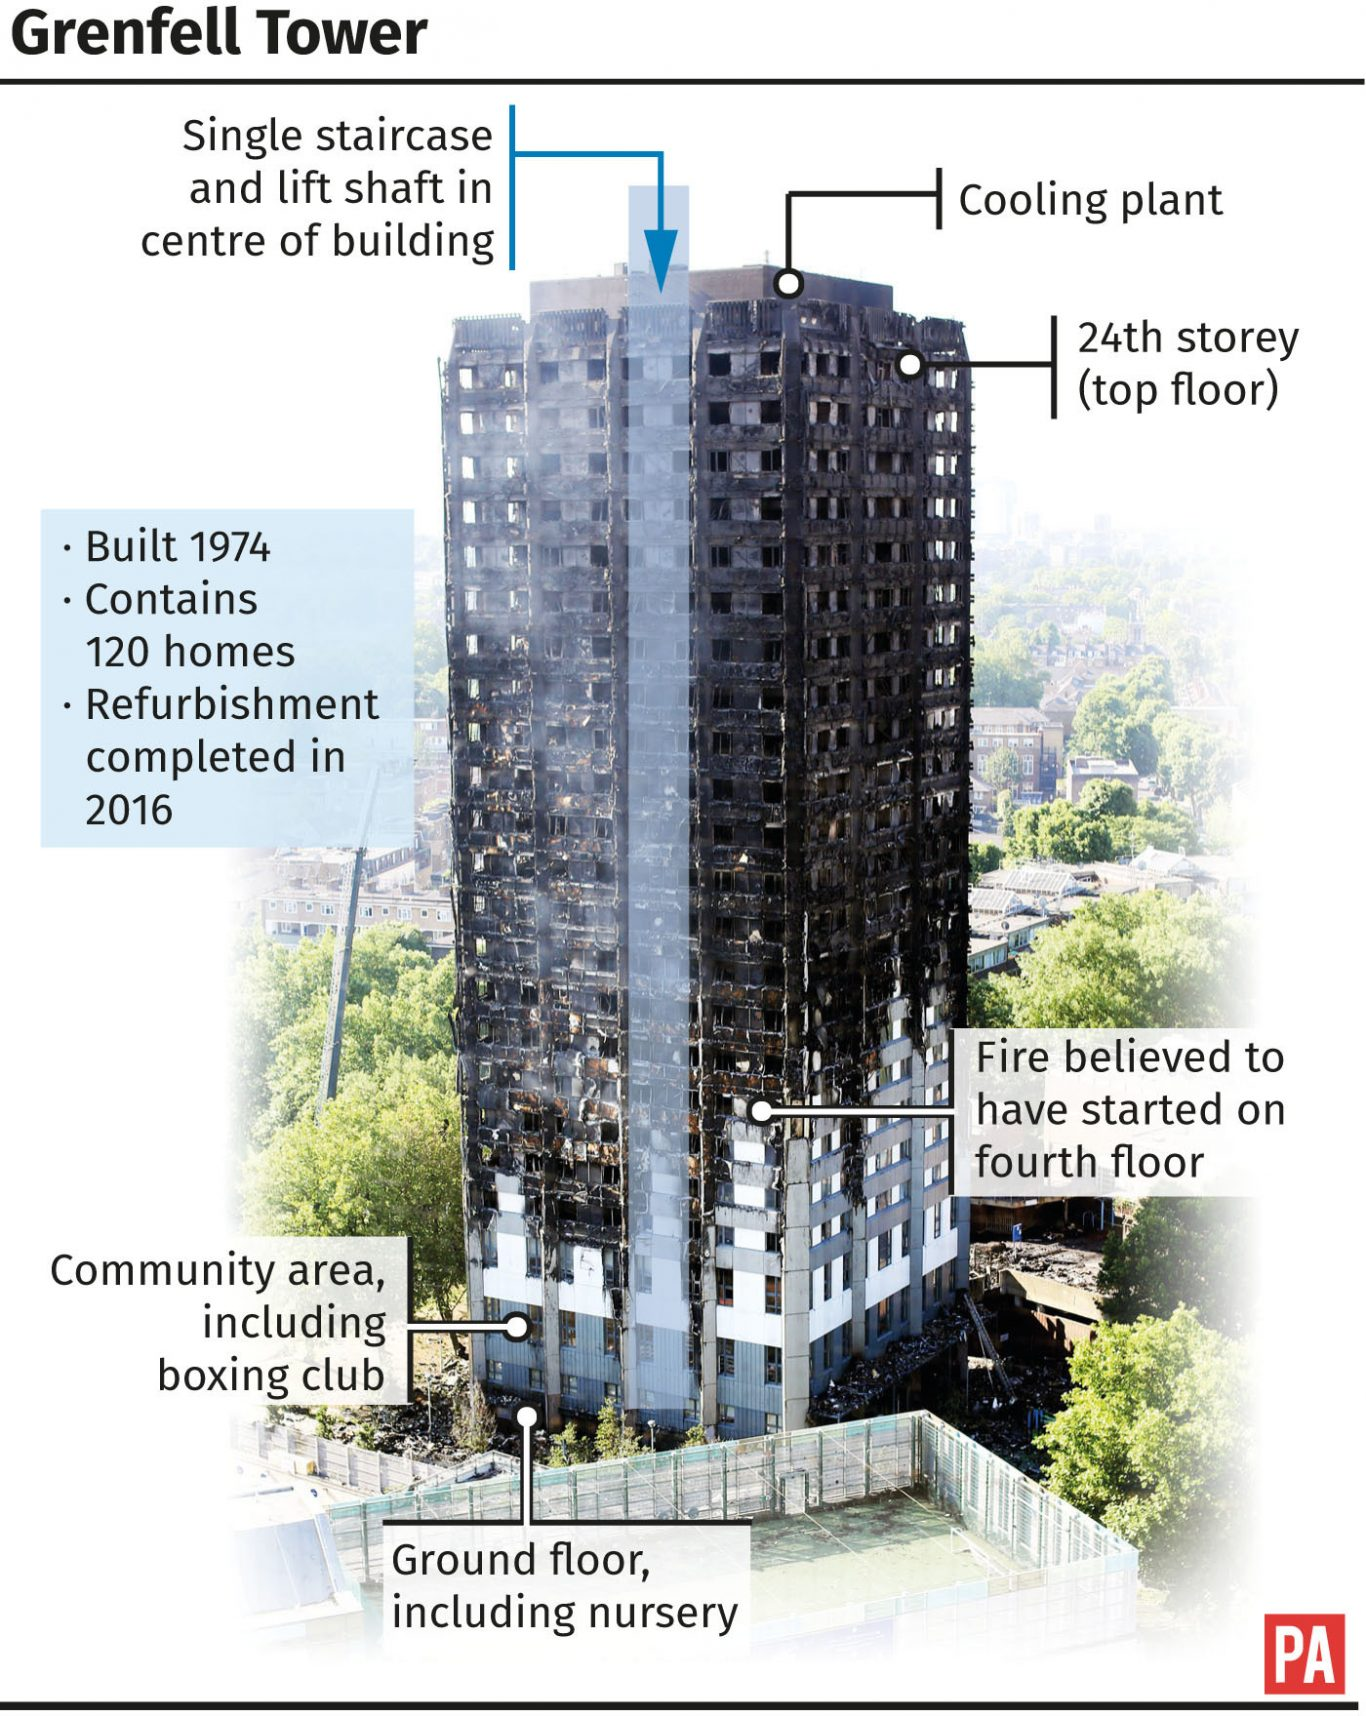 Grenfell Tower fire: 79 people are dead or missing presumed dead